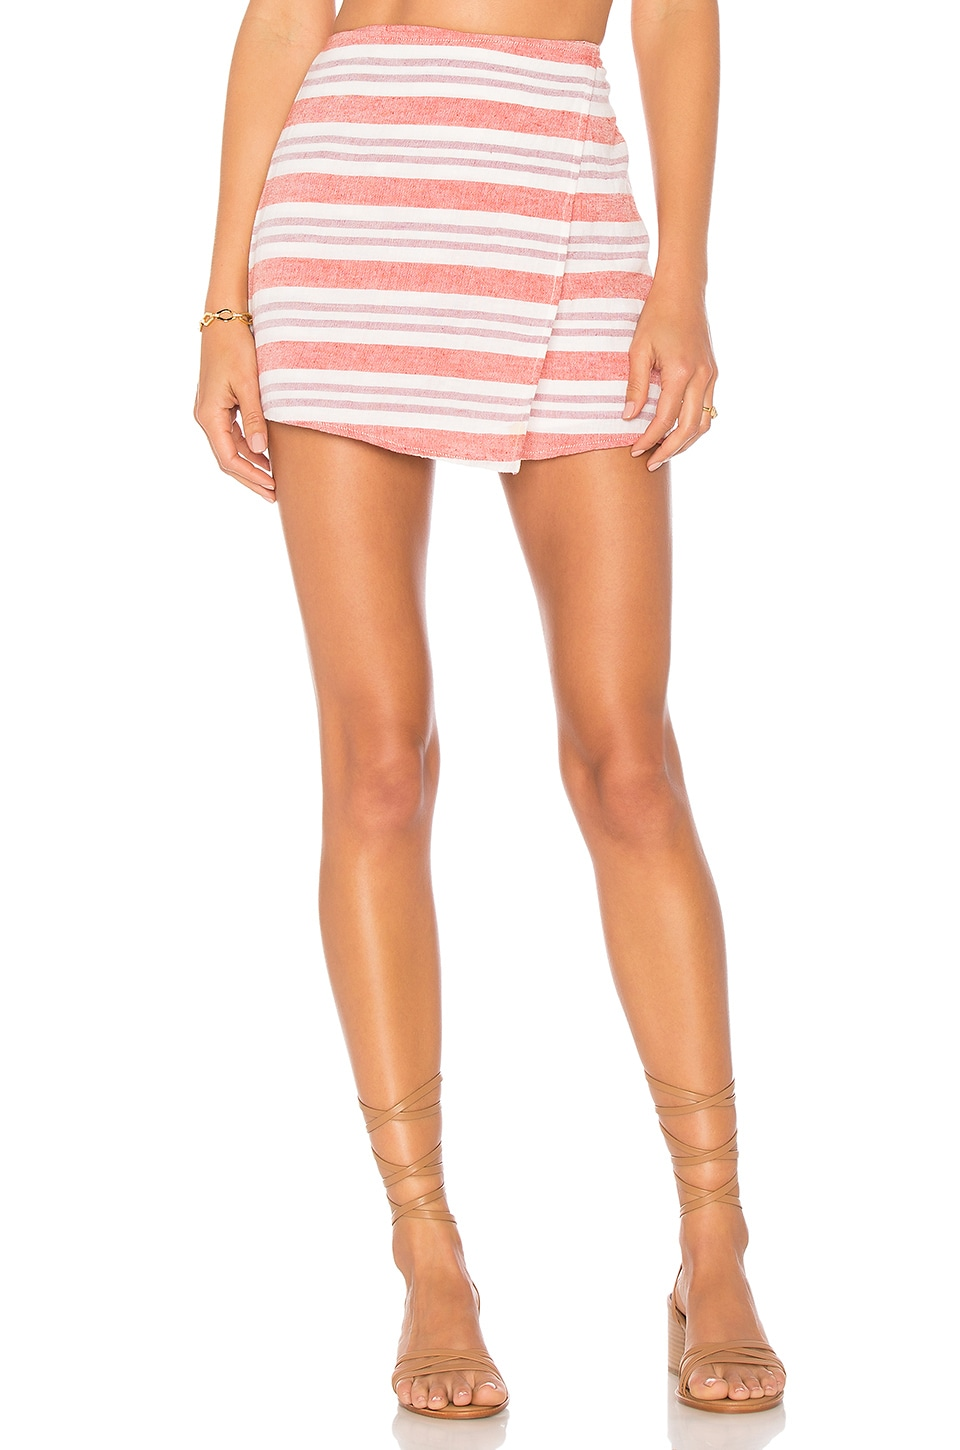 Lovers + Friends Stargazer Skort in Berry Stripe